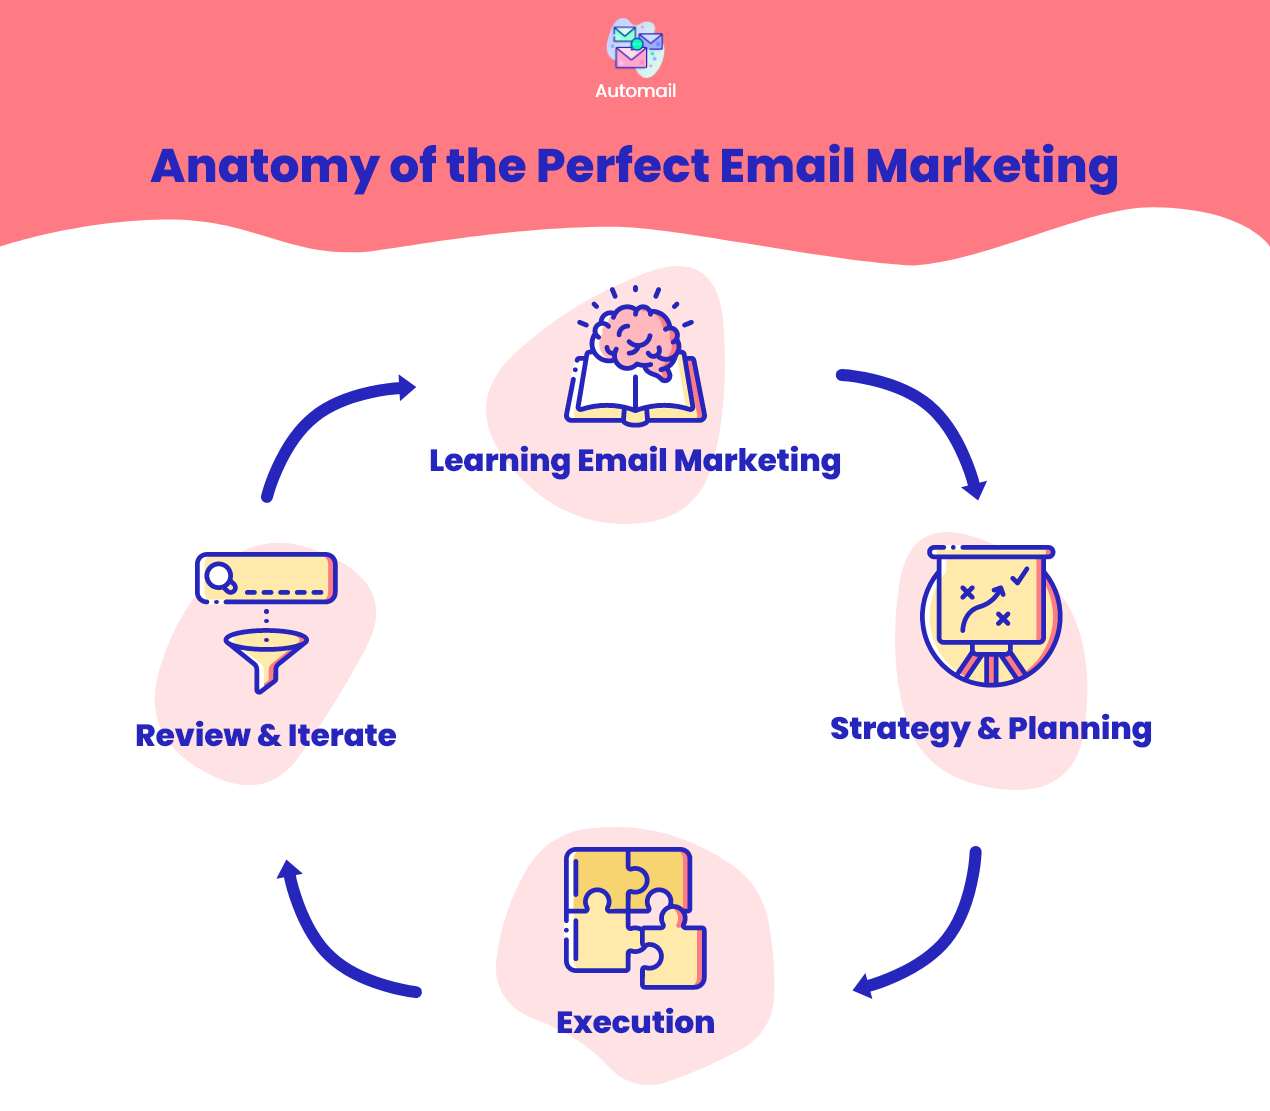 Anatomy of the Email Marketing Process